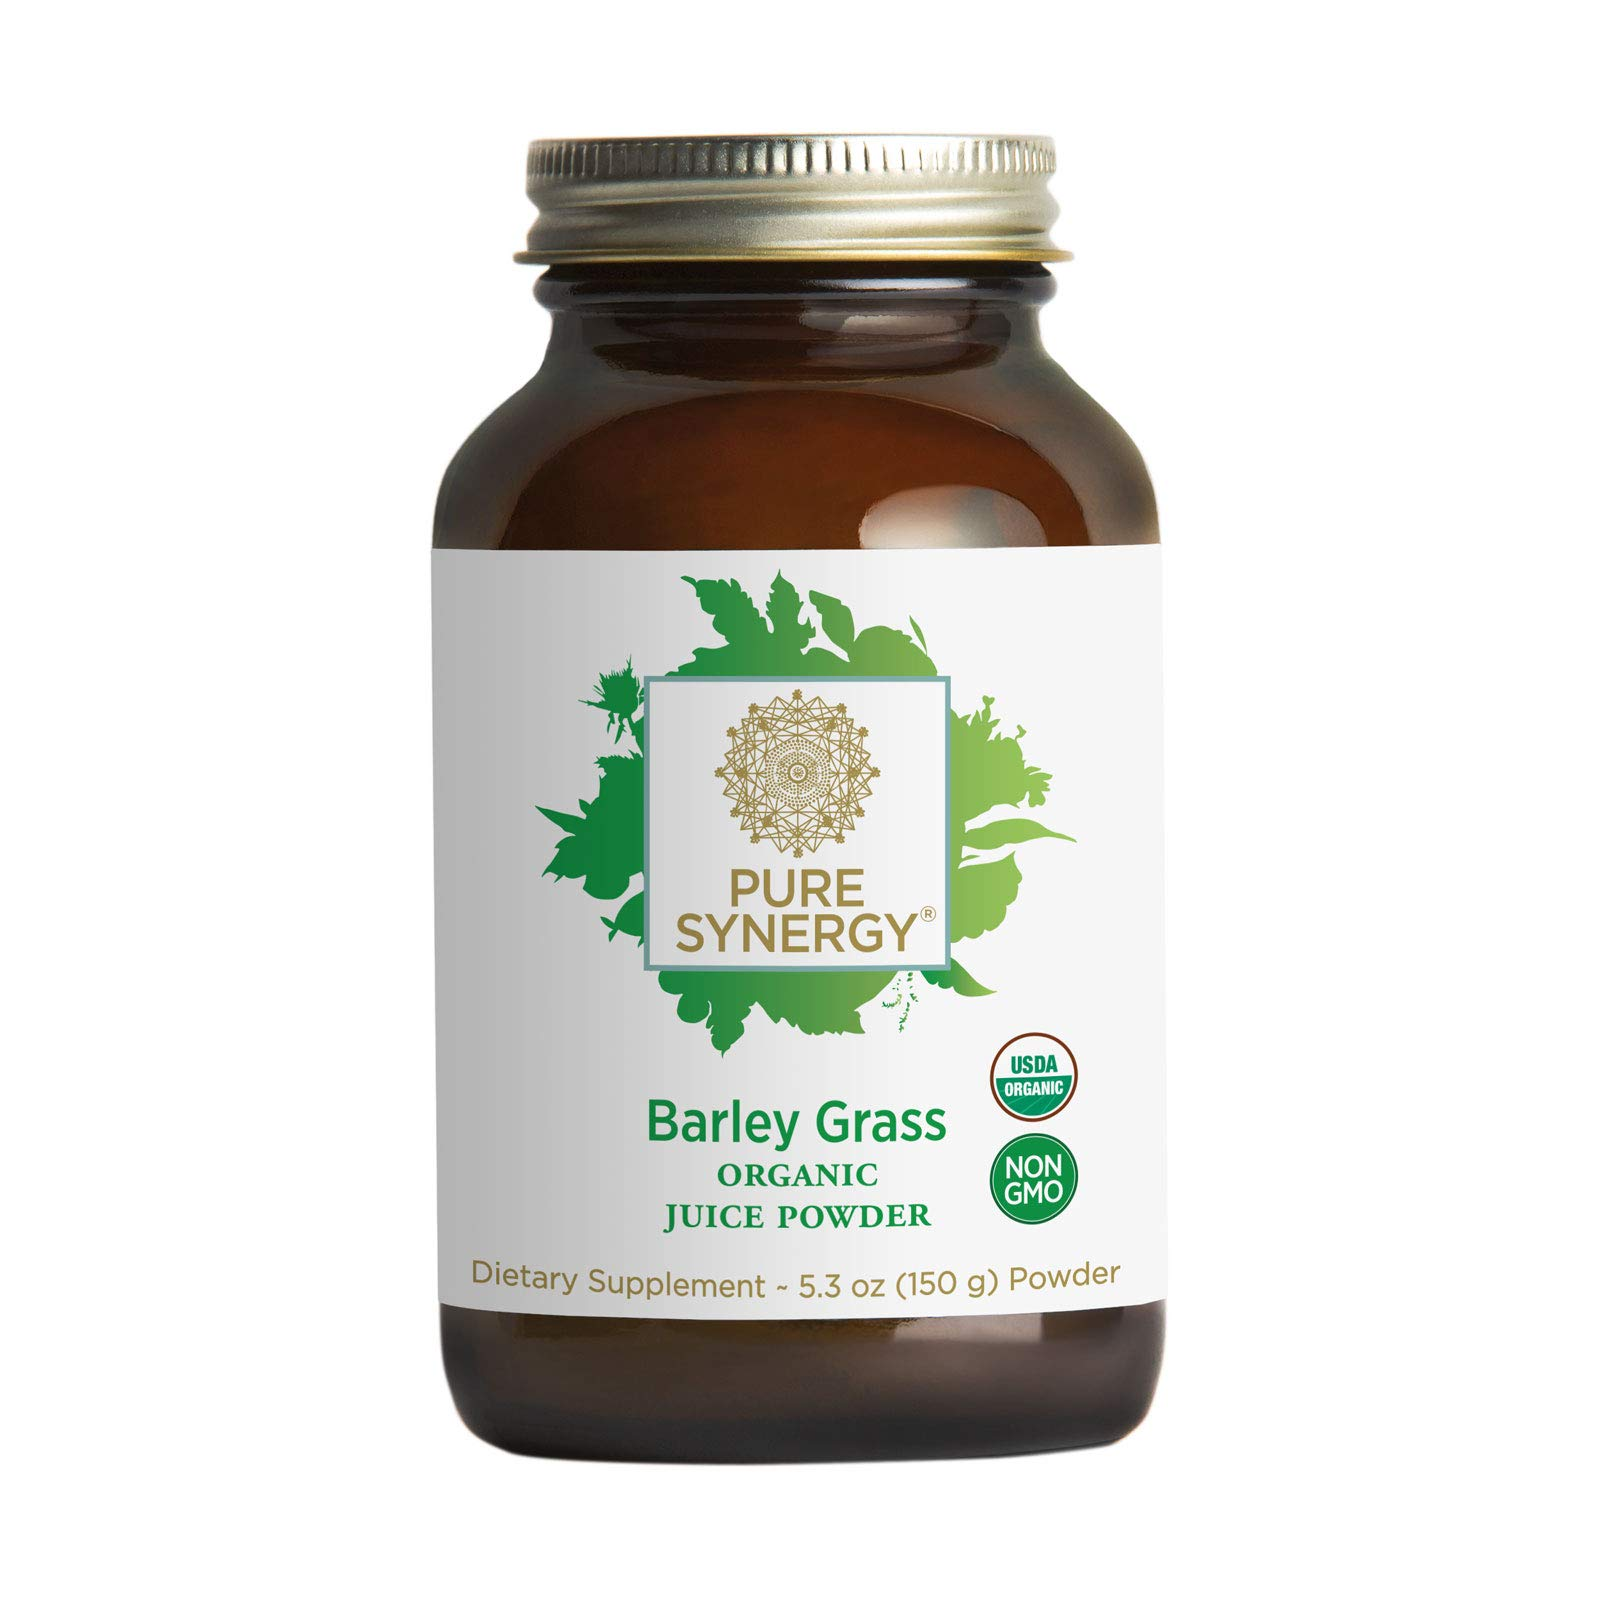 Pure Synergy Barley Grass Juice | 5.3 oz Powder | USDA Organic | Non-GMO | Vegan | Made and Sourced in The USA | Cold-Juiced and Low-Temperature Dried